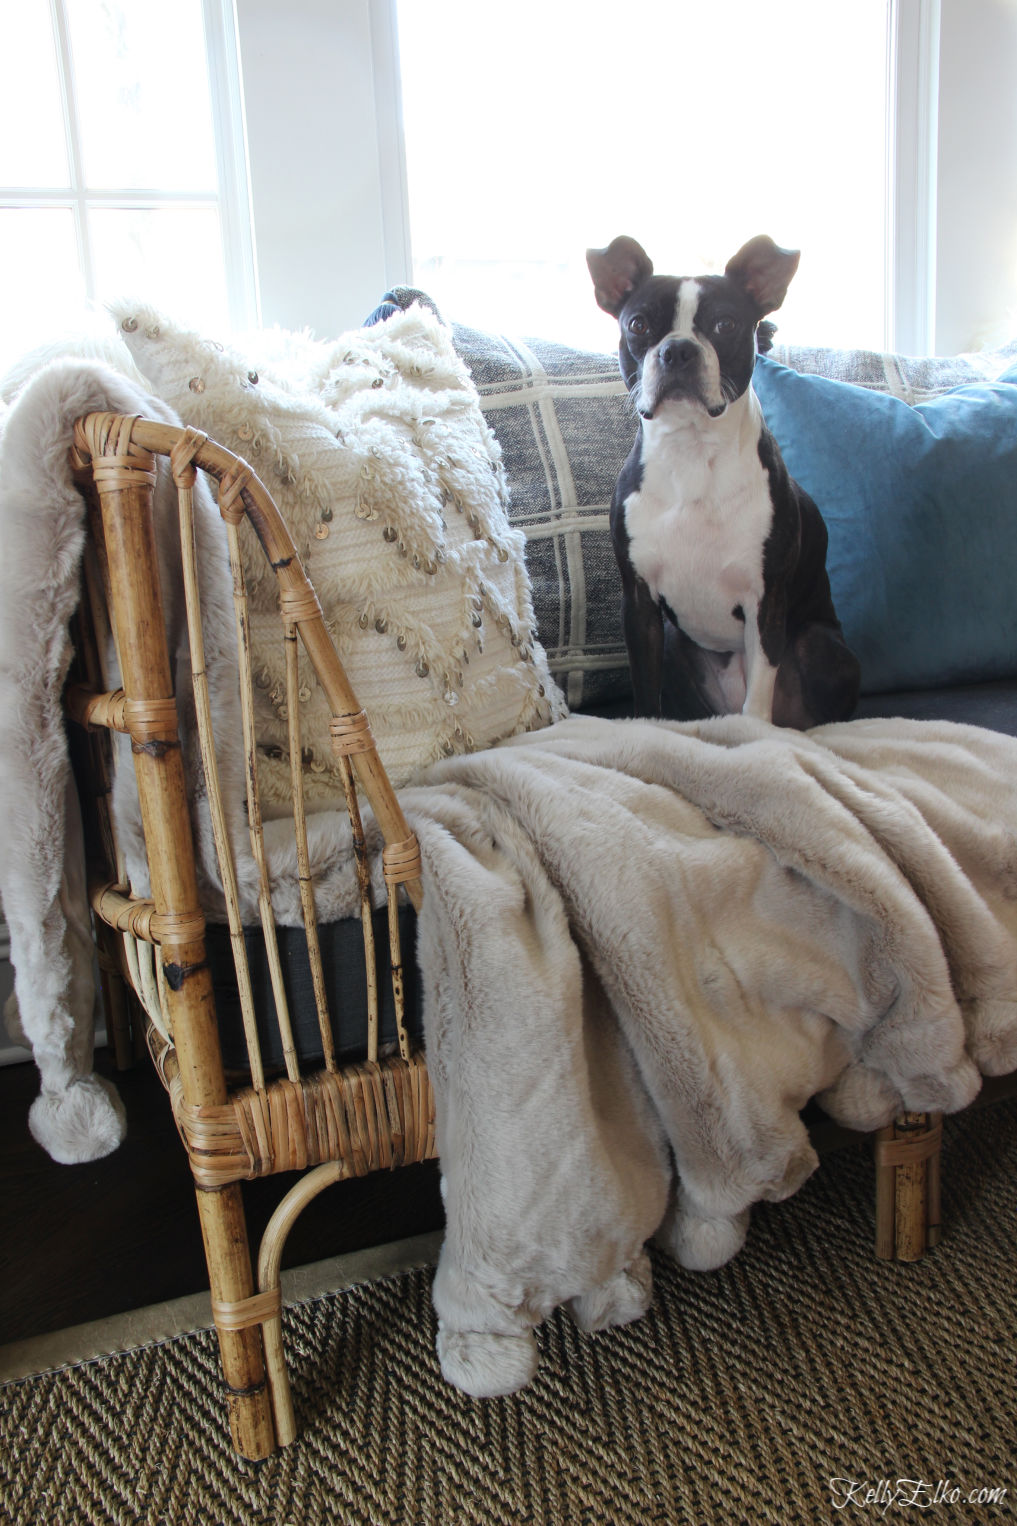 Love this cozy rattan daybed with pom pom throw and cute Boston Terrier kellyelko.com #rattanfurniture #daybed #cozydecor #bluedecor #serenaandlily #ourarticle #pompom #bostonterrier #kellyelko